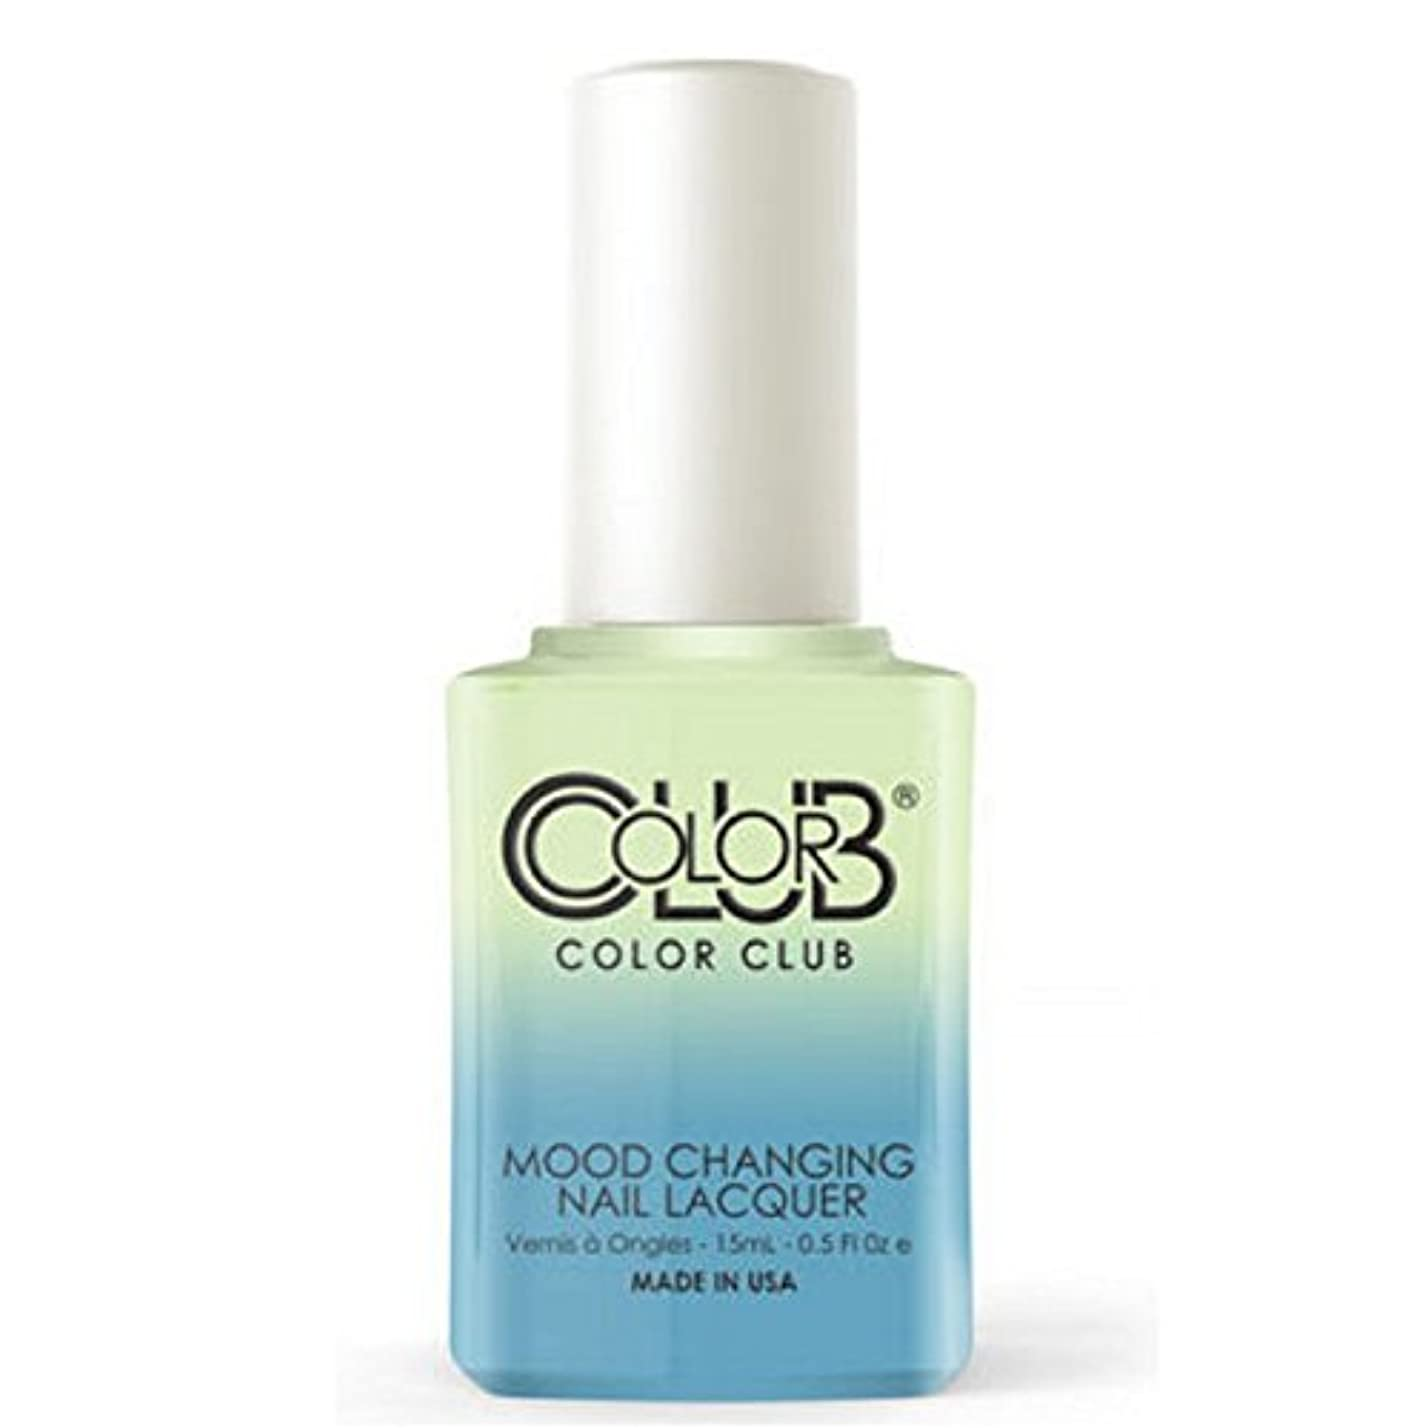 Color Club Mood Changing Nail Lacquer - Extra-vert - 15 mL / 0.5 fl oz